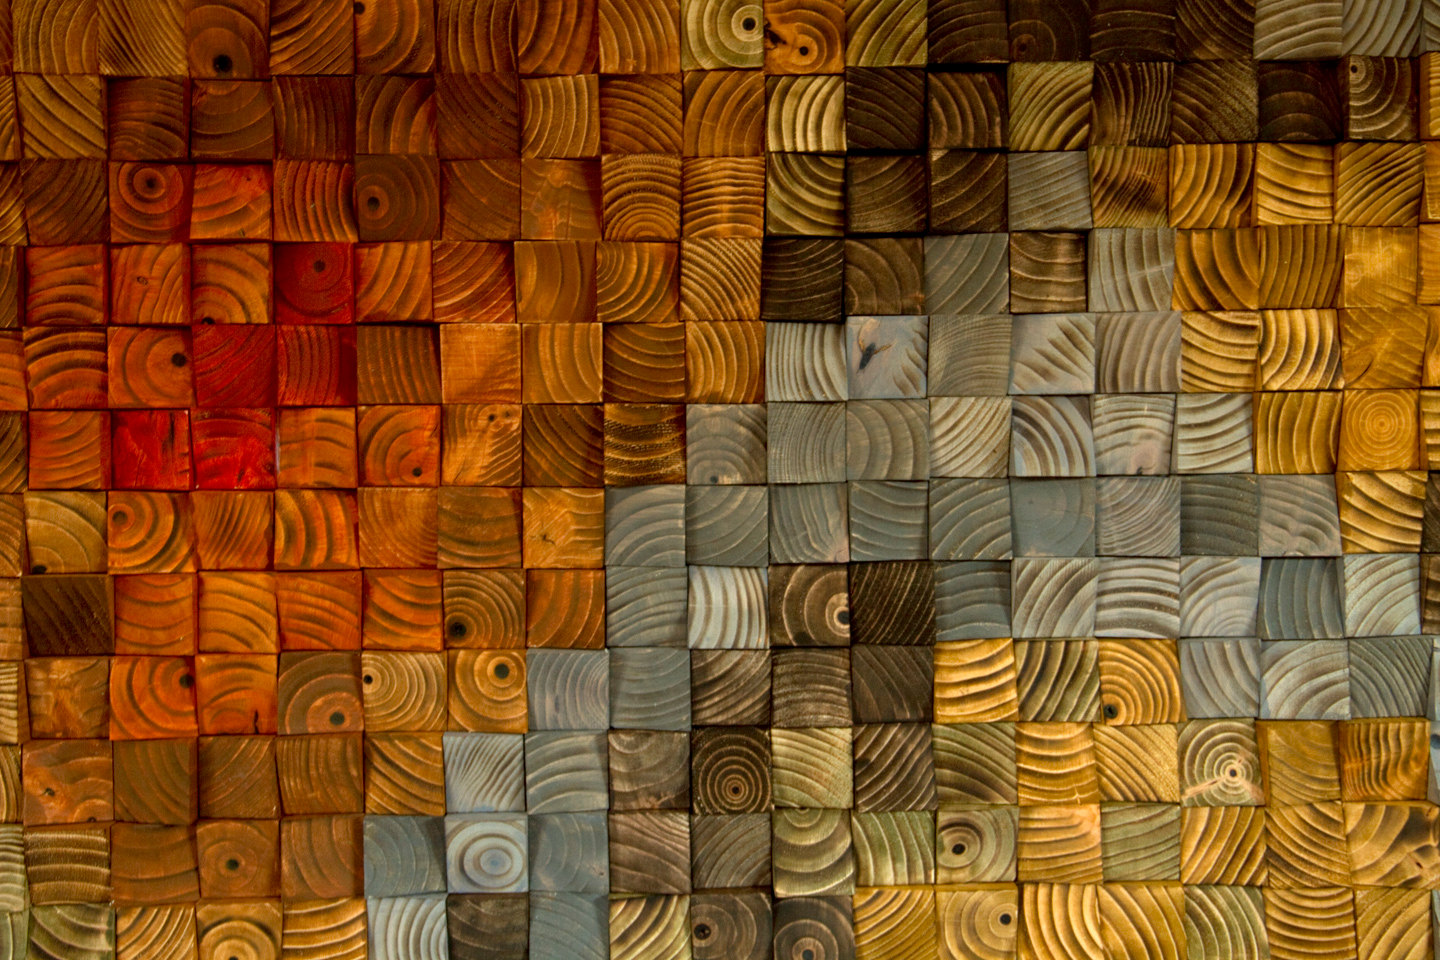 Rustic wood wall art wood wall sculpture abstract wood art art glamour - Modern rustic wall decor ...